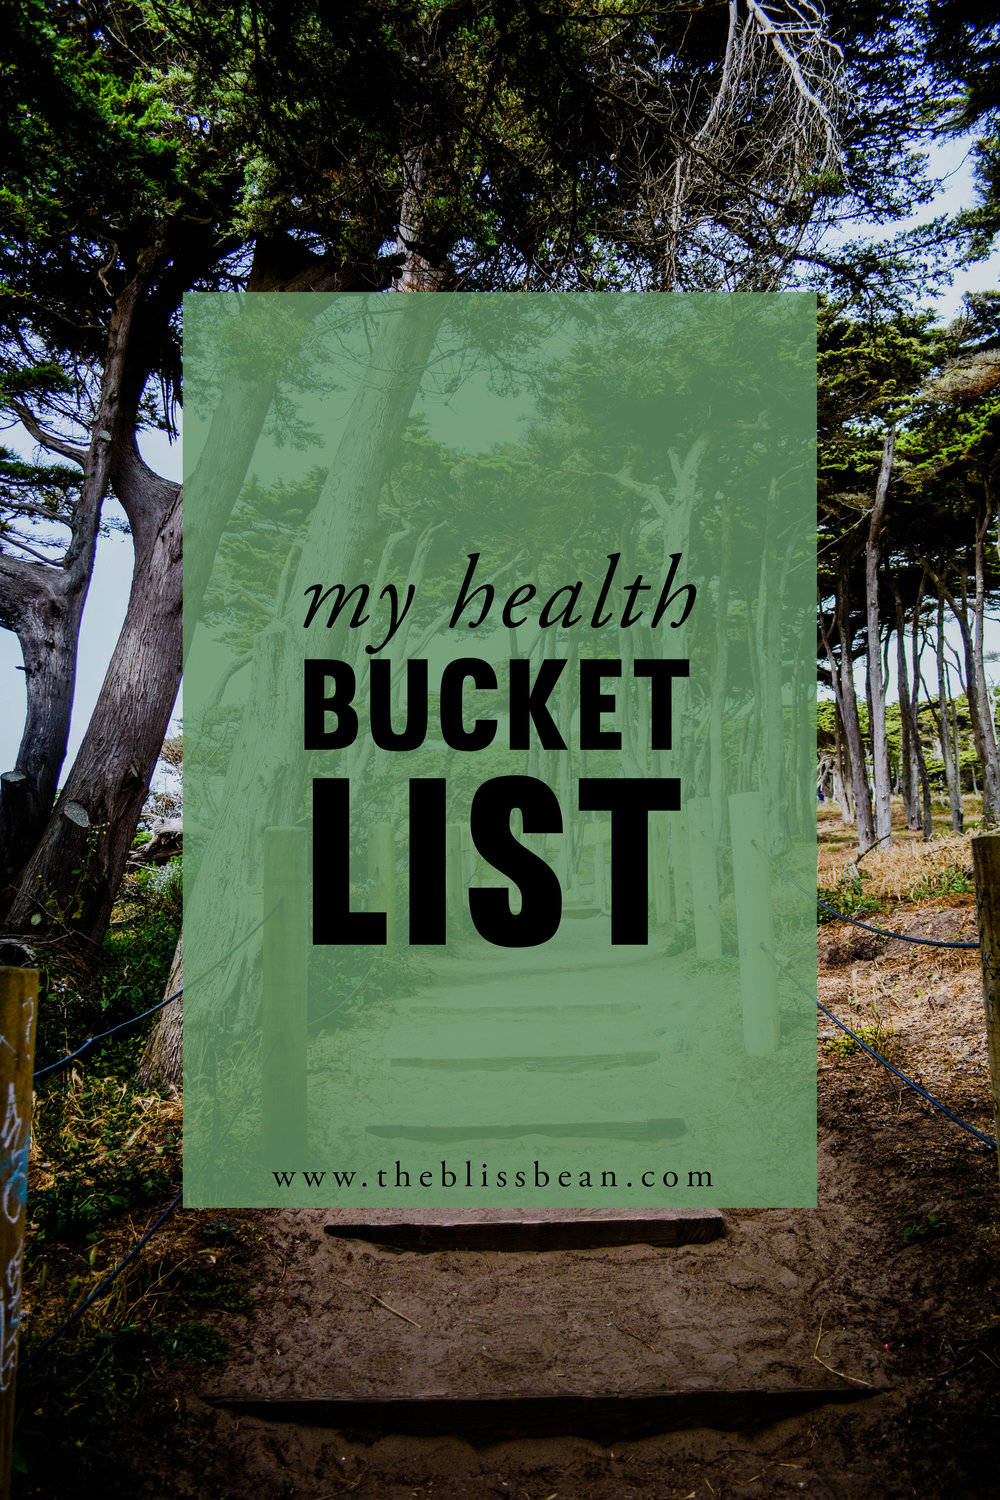 Health Bucket List Cover Photo.jpg